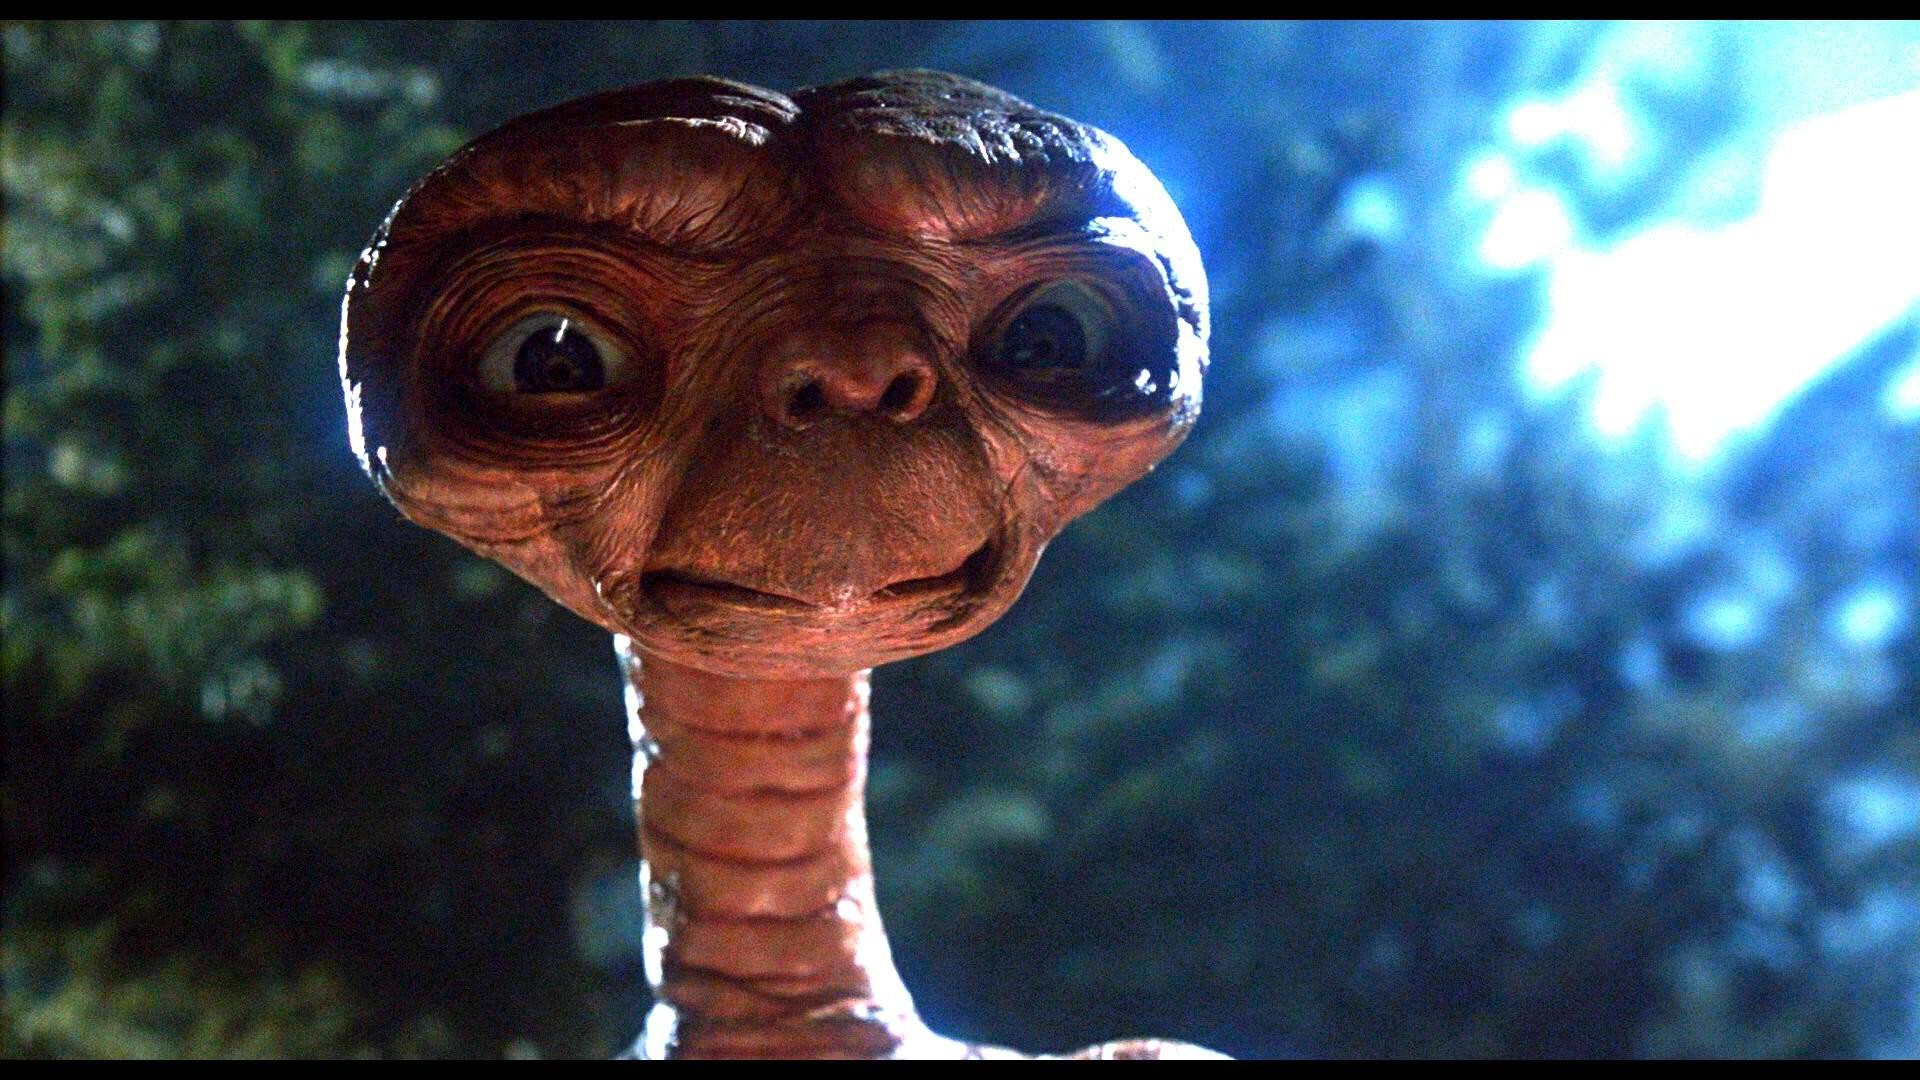 E.T. The Extra Terrestrial Wallpapers   Wallpaper Cave